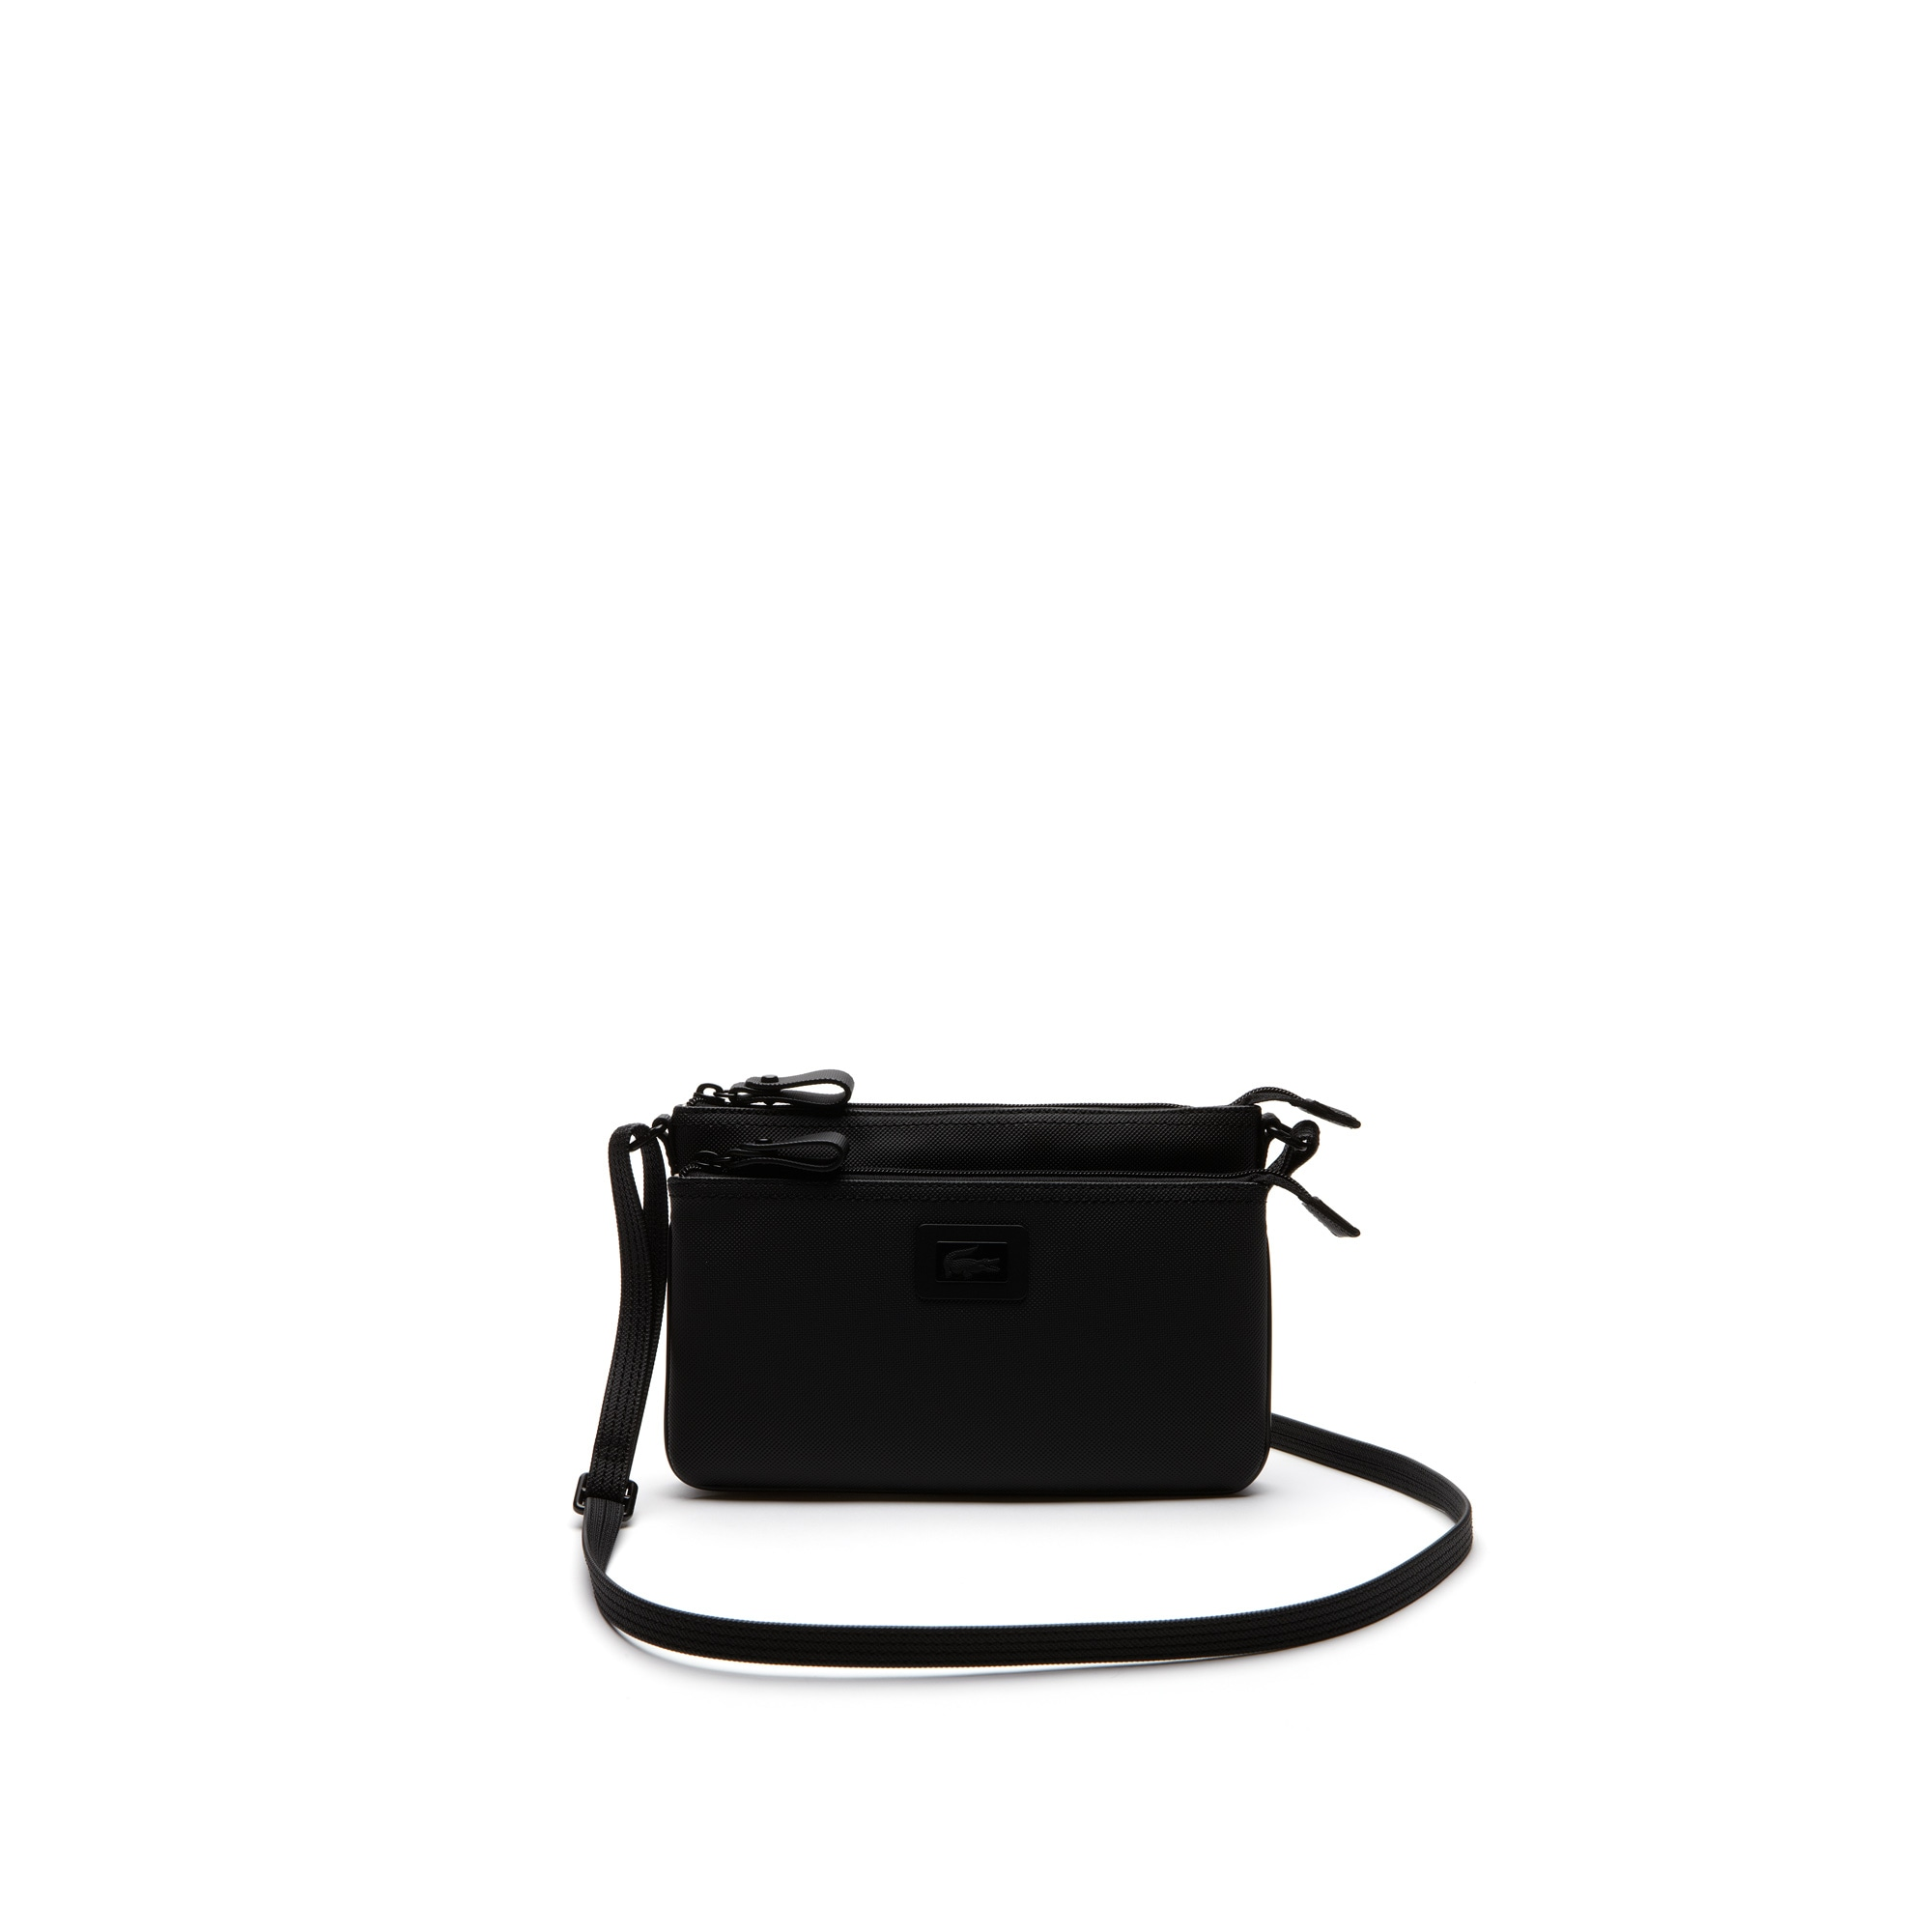 Women's Classic monochrome double zippered pouch